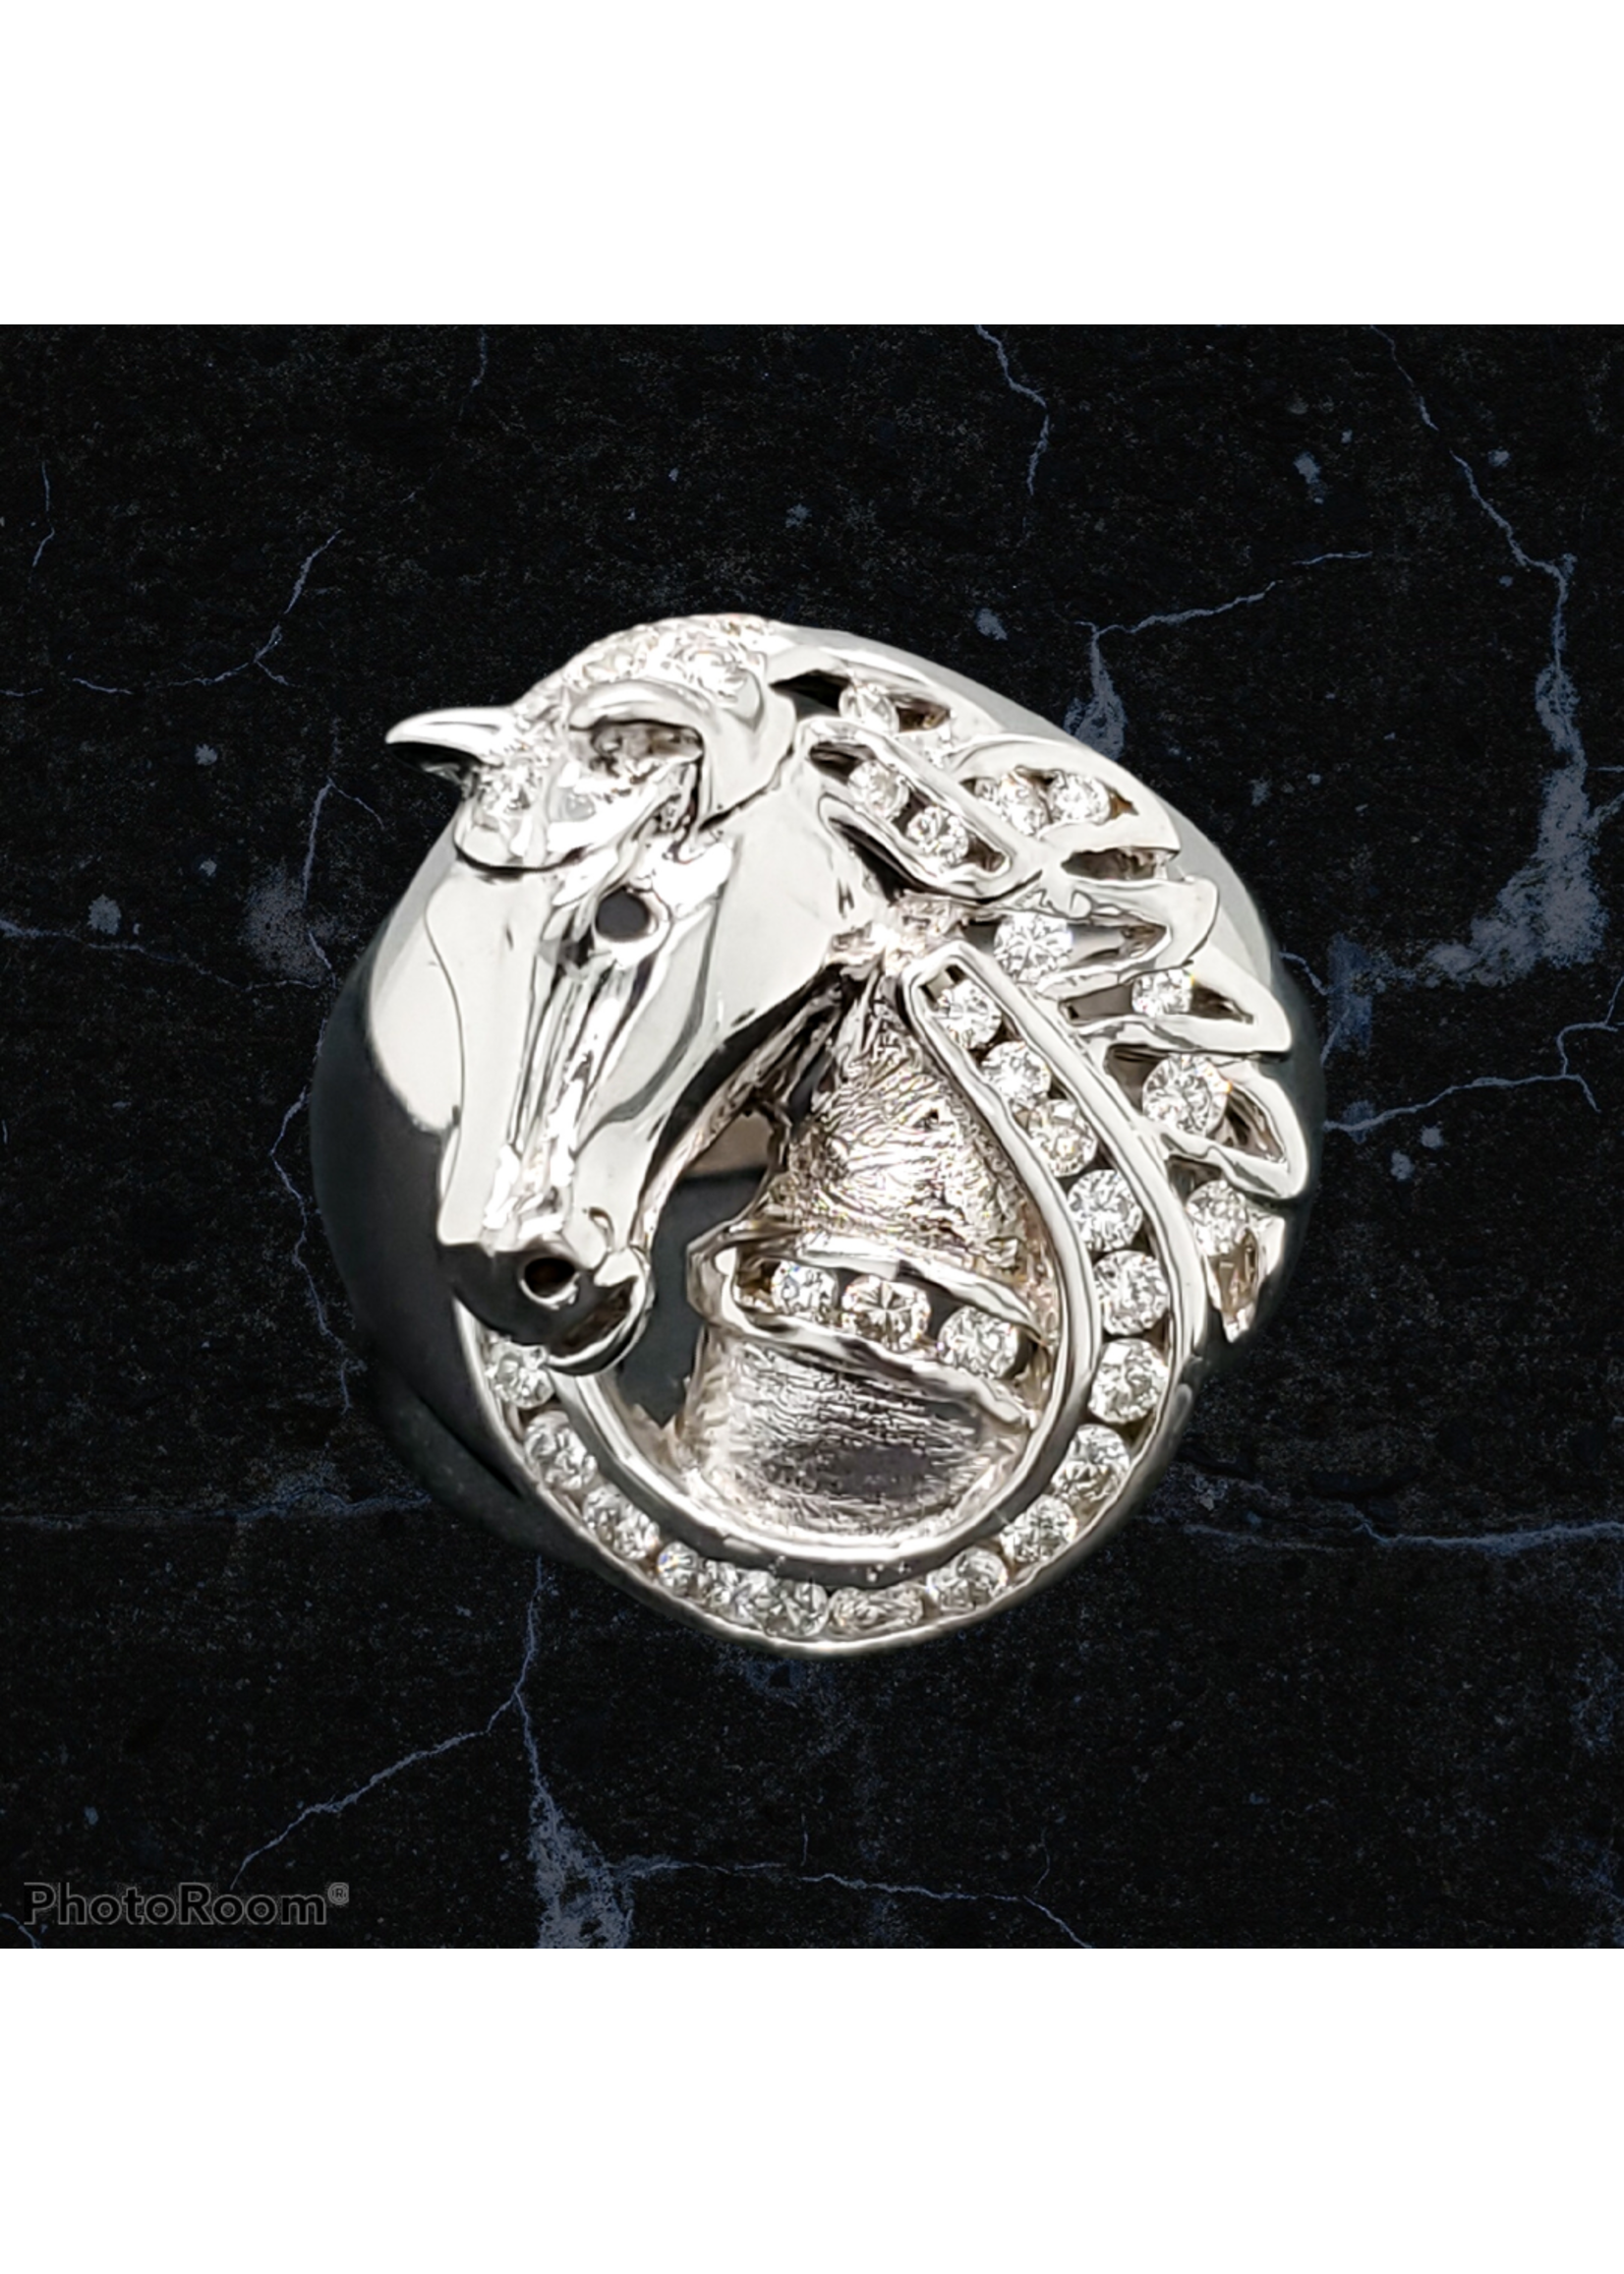 KDesign Studio 18kt White Gold Horse Ring by Goldsmith Hang Lau